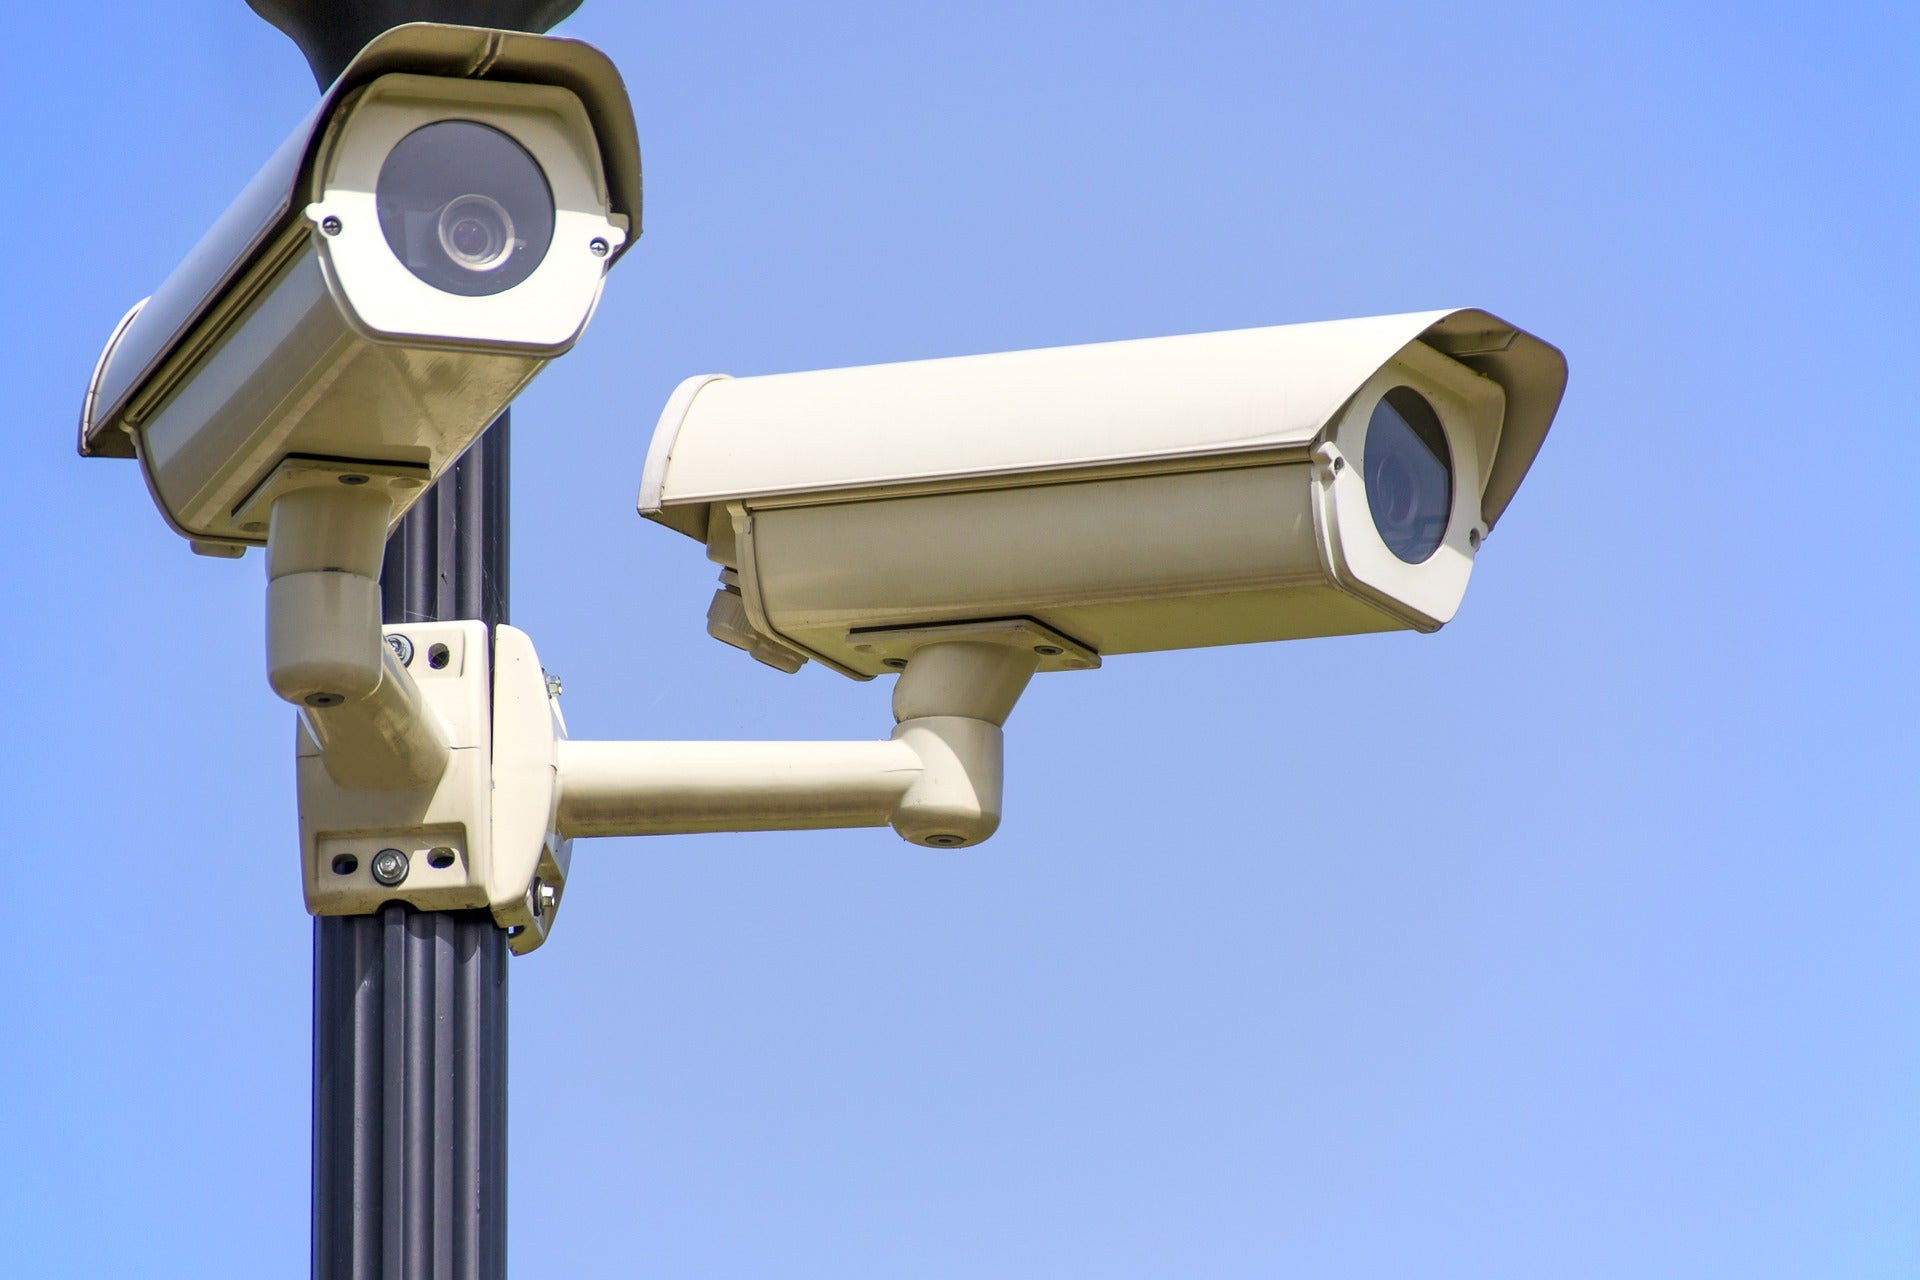 Can security cameras work through windows?